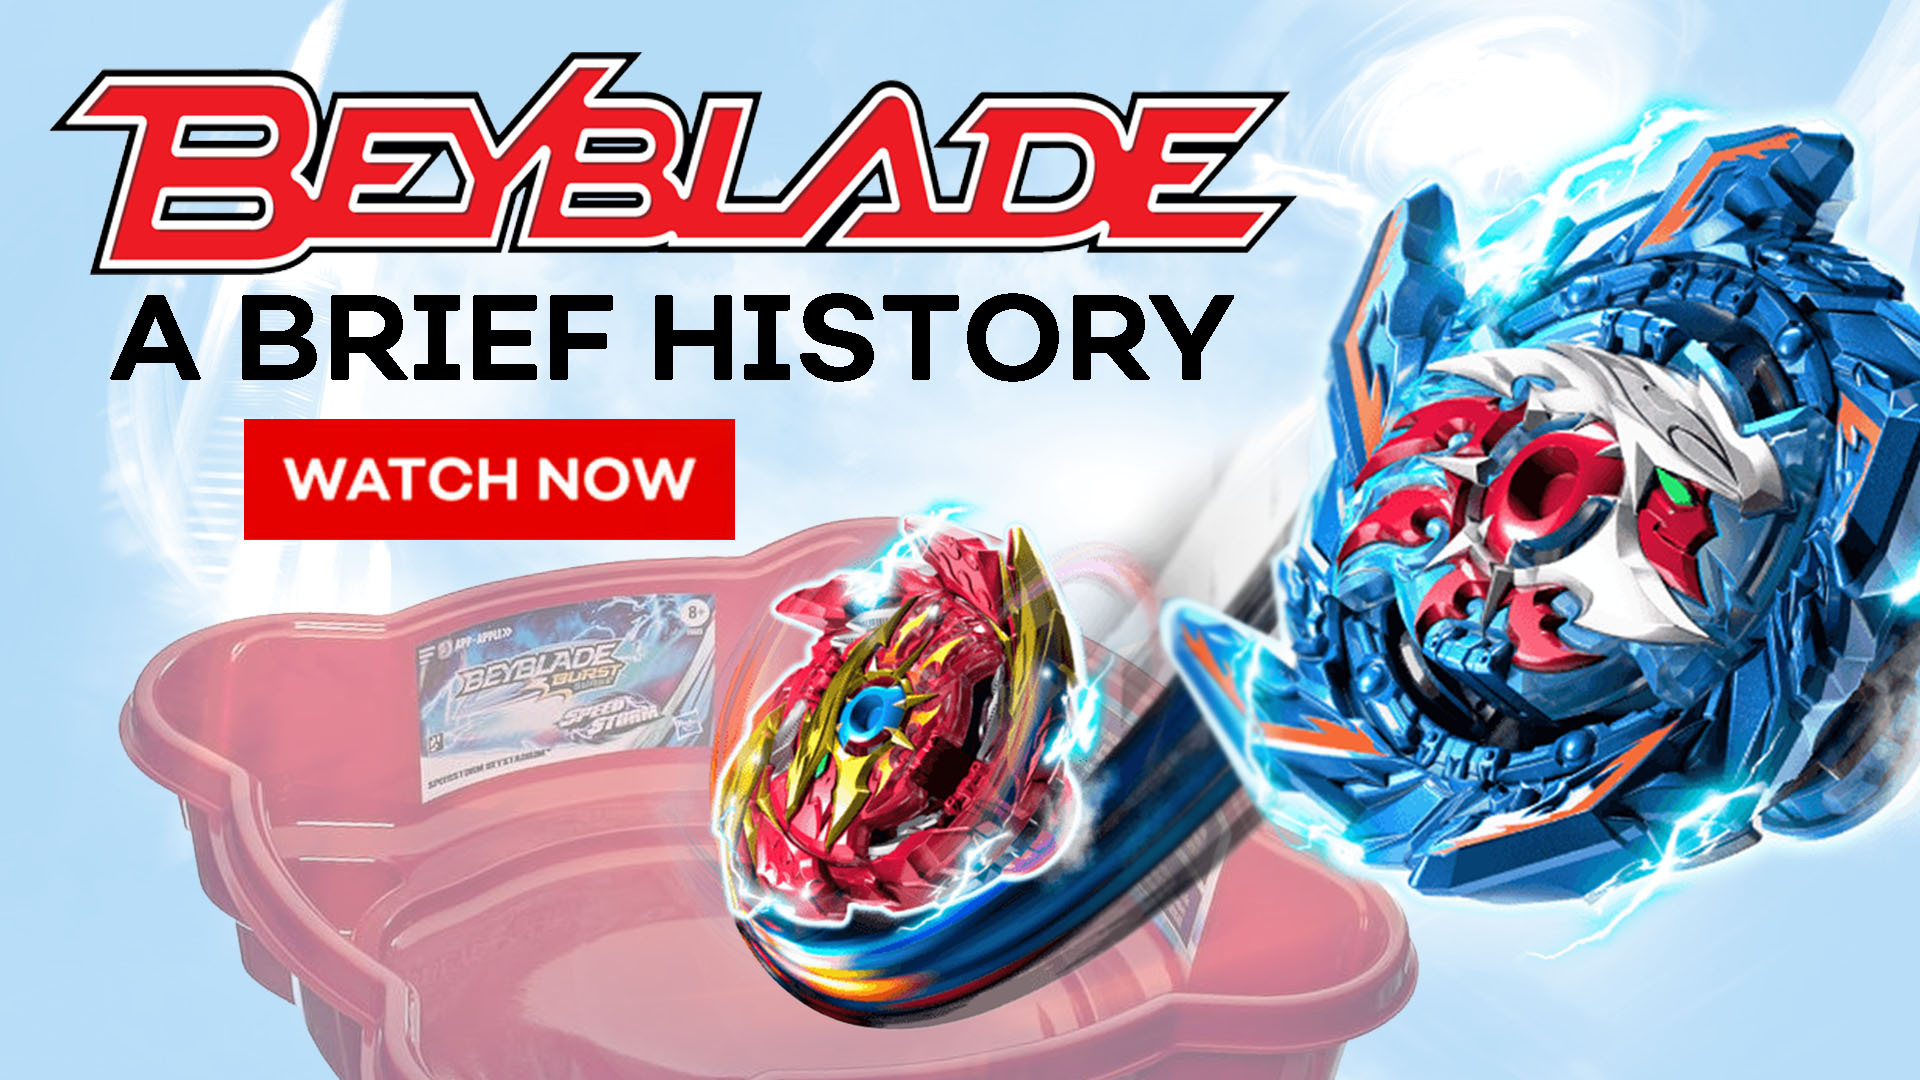 A Brief History of Beyblade